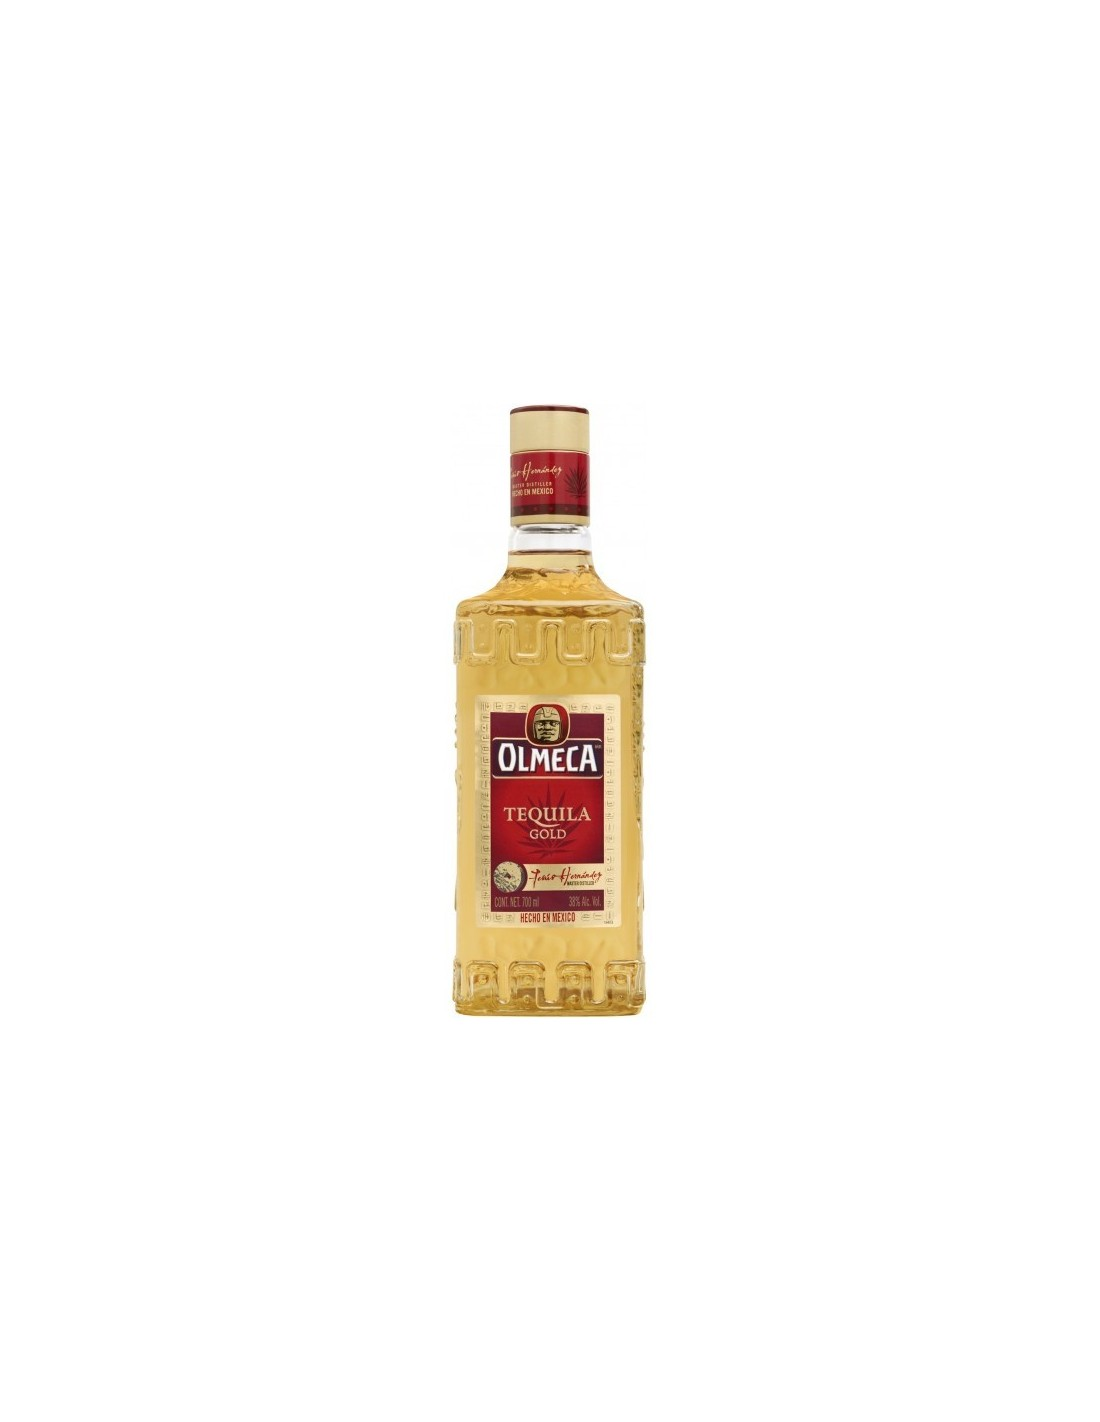 Tequila aurie Olmeca Gold 0.7L, 38% alc., Mexic